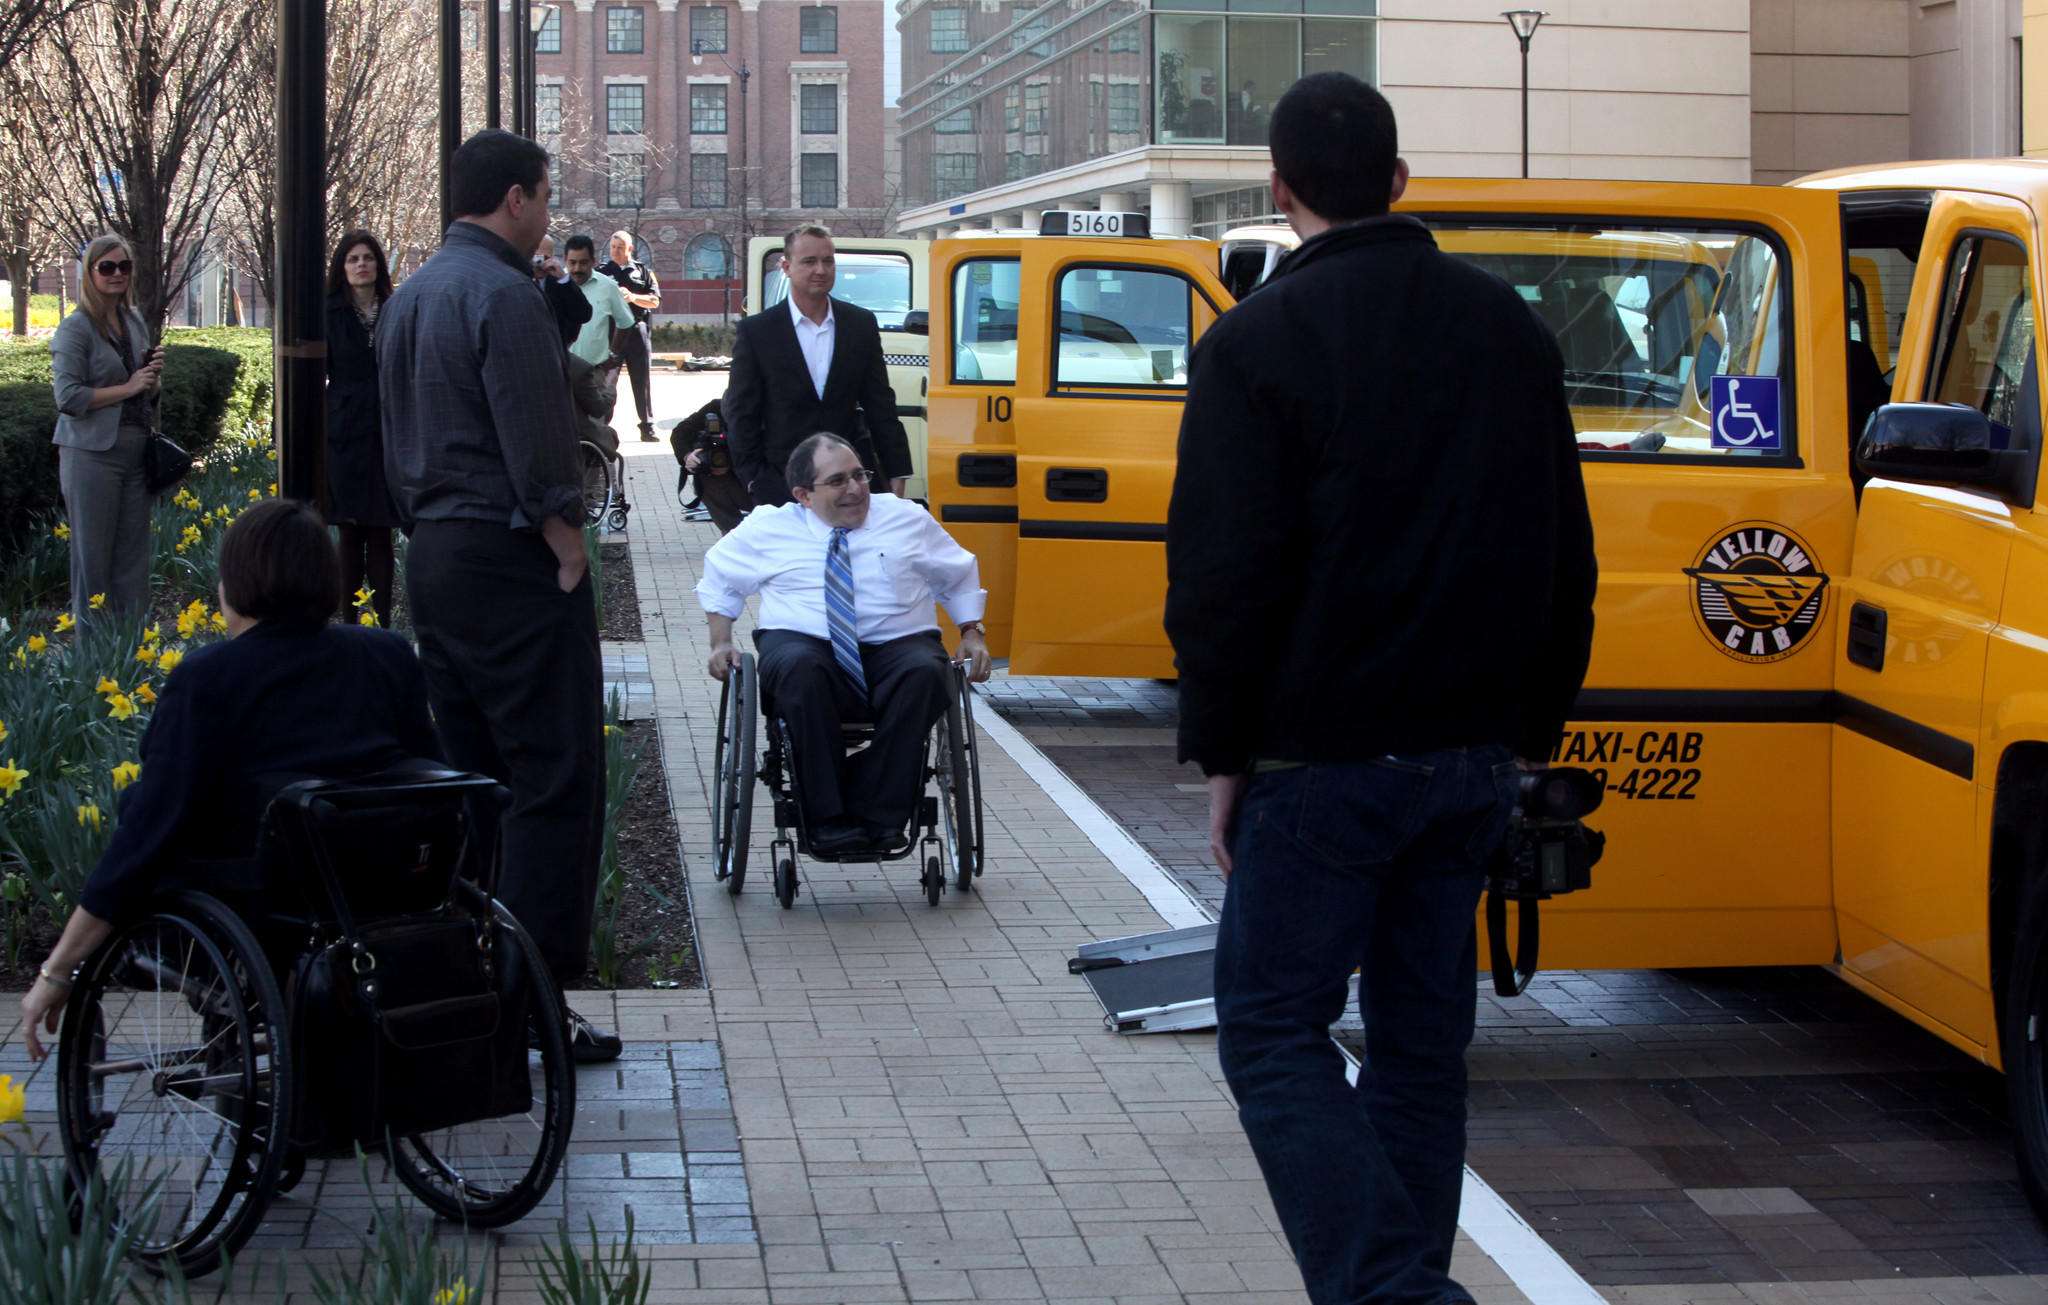 Joe Russo, center, prepares to board one of several wheelchair accessible cabs parked at McCormick Place.